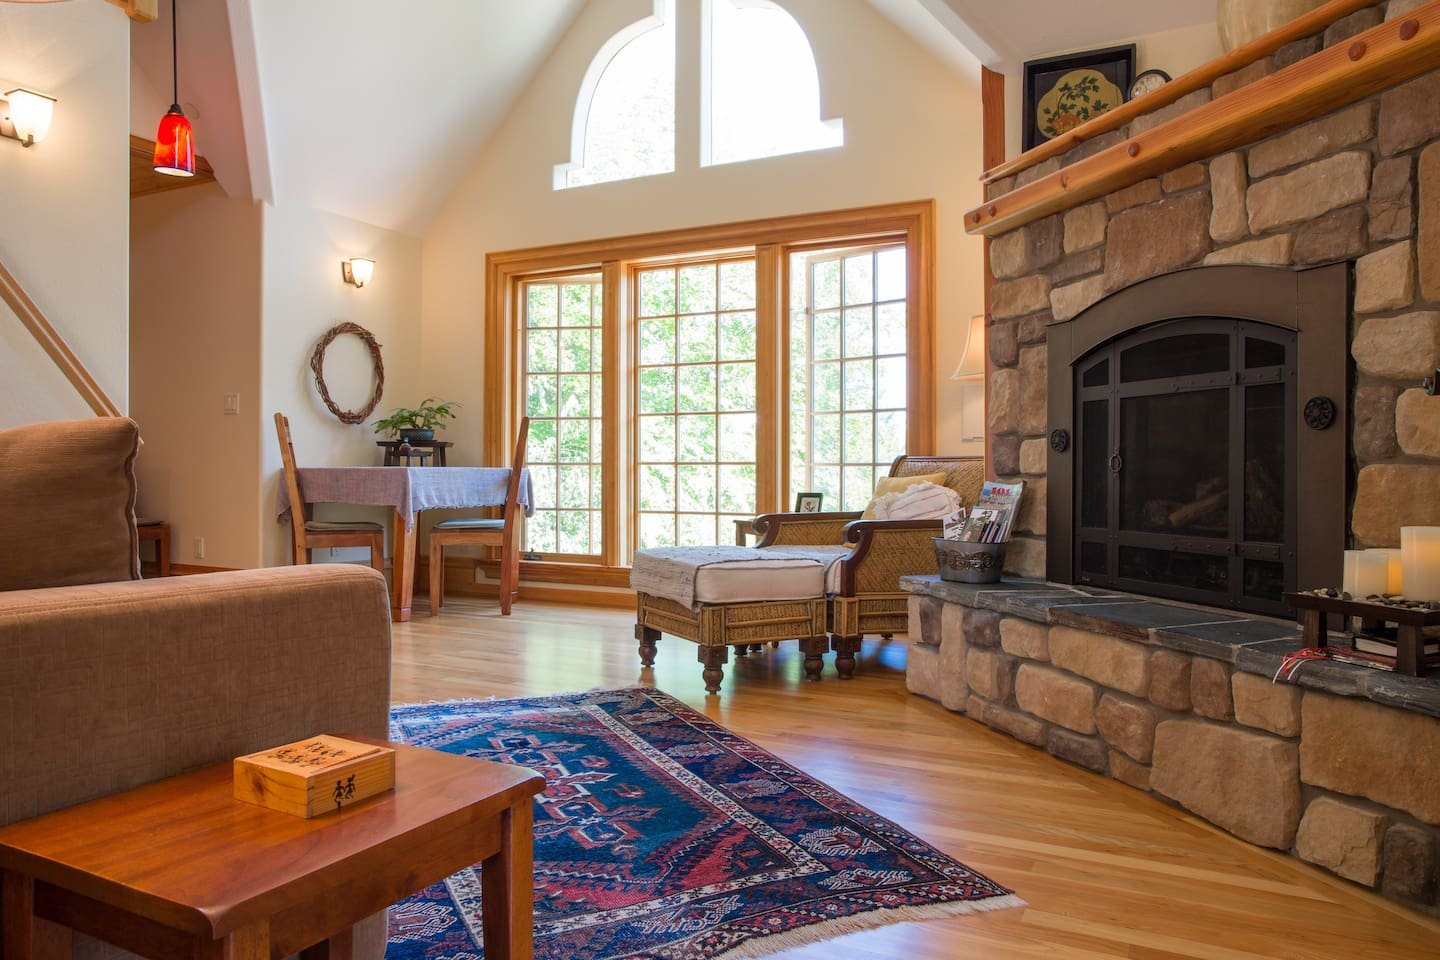 Victorian Garden Carriage House - Apartments for Rent in Ashland ...